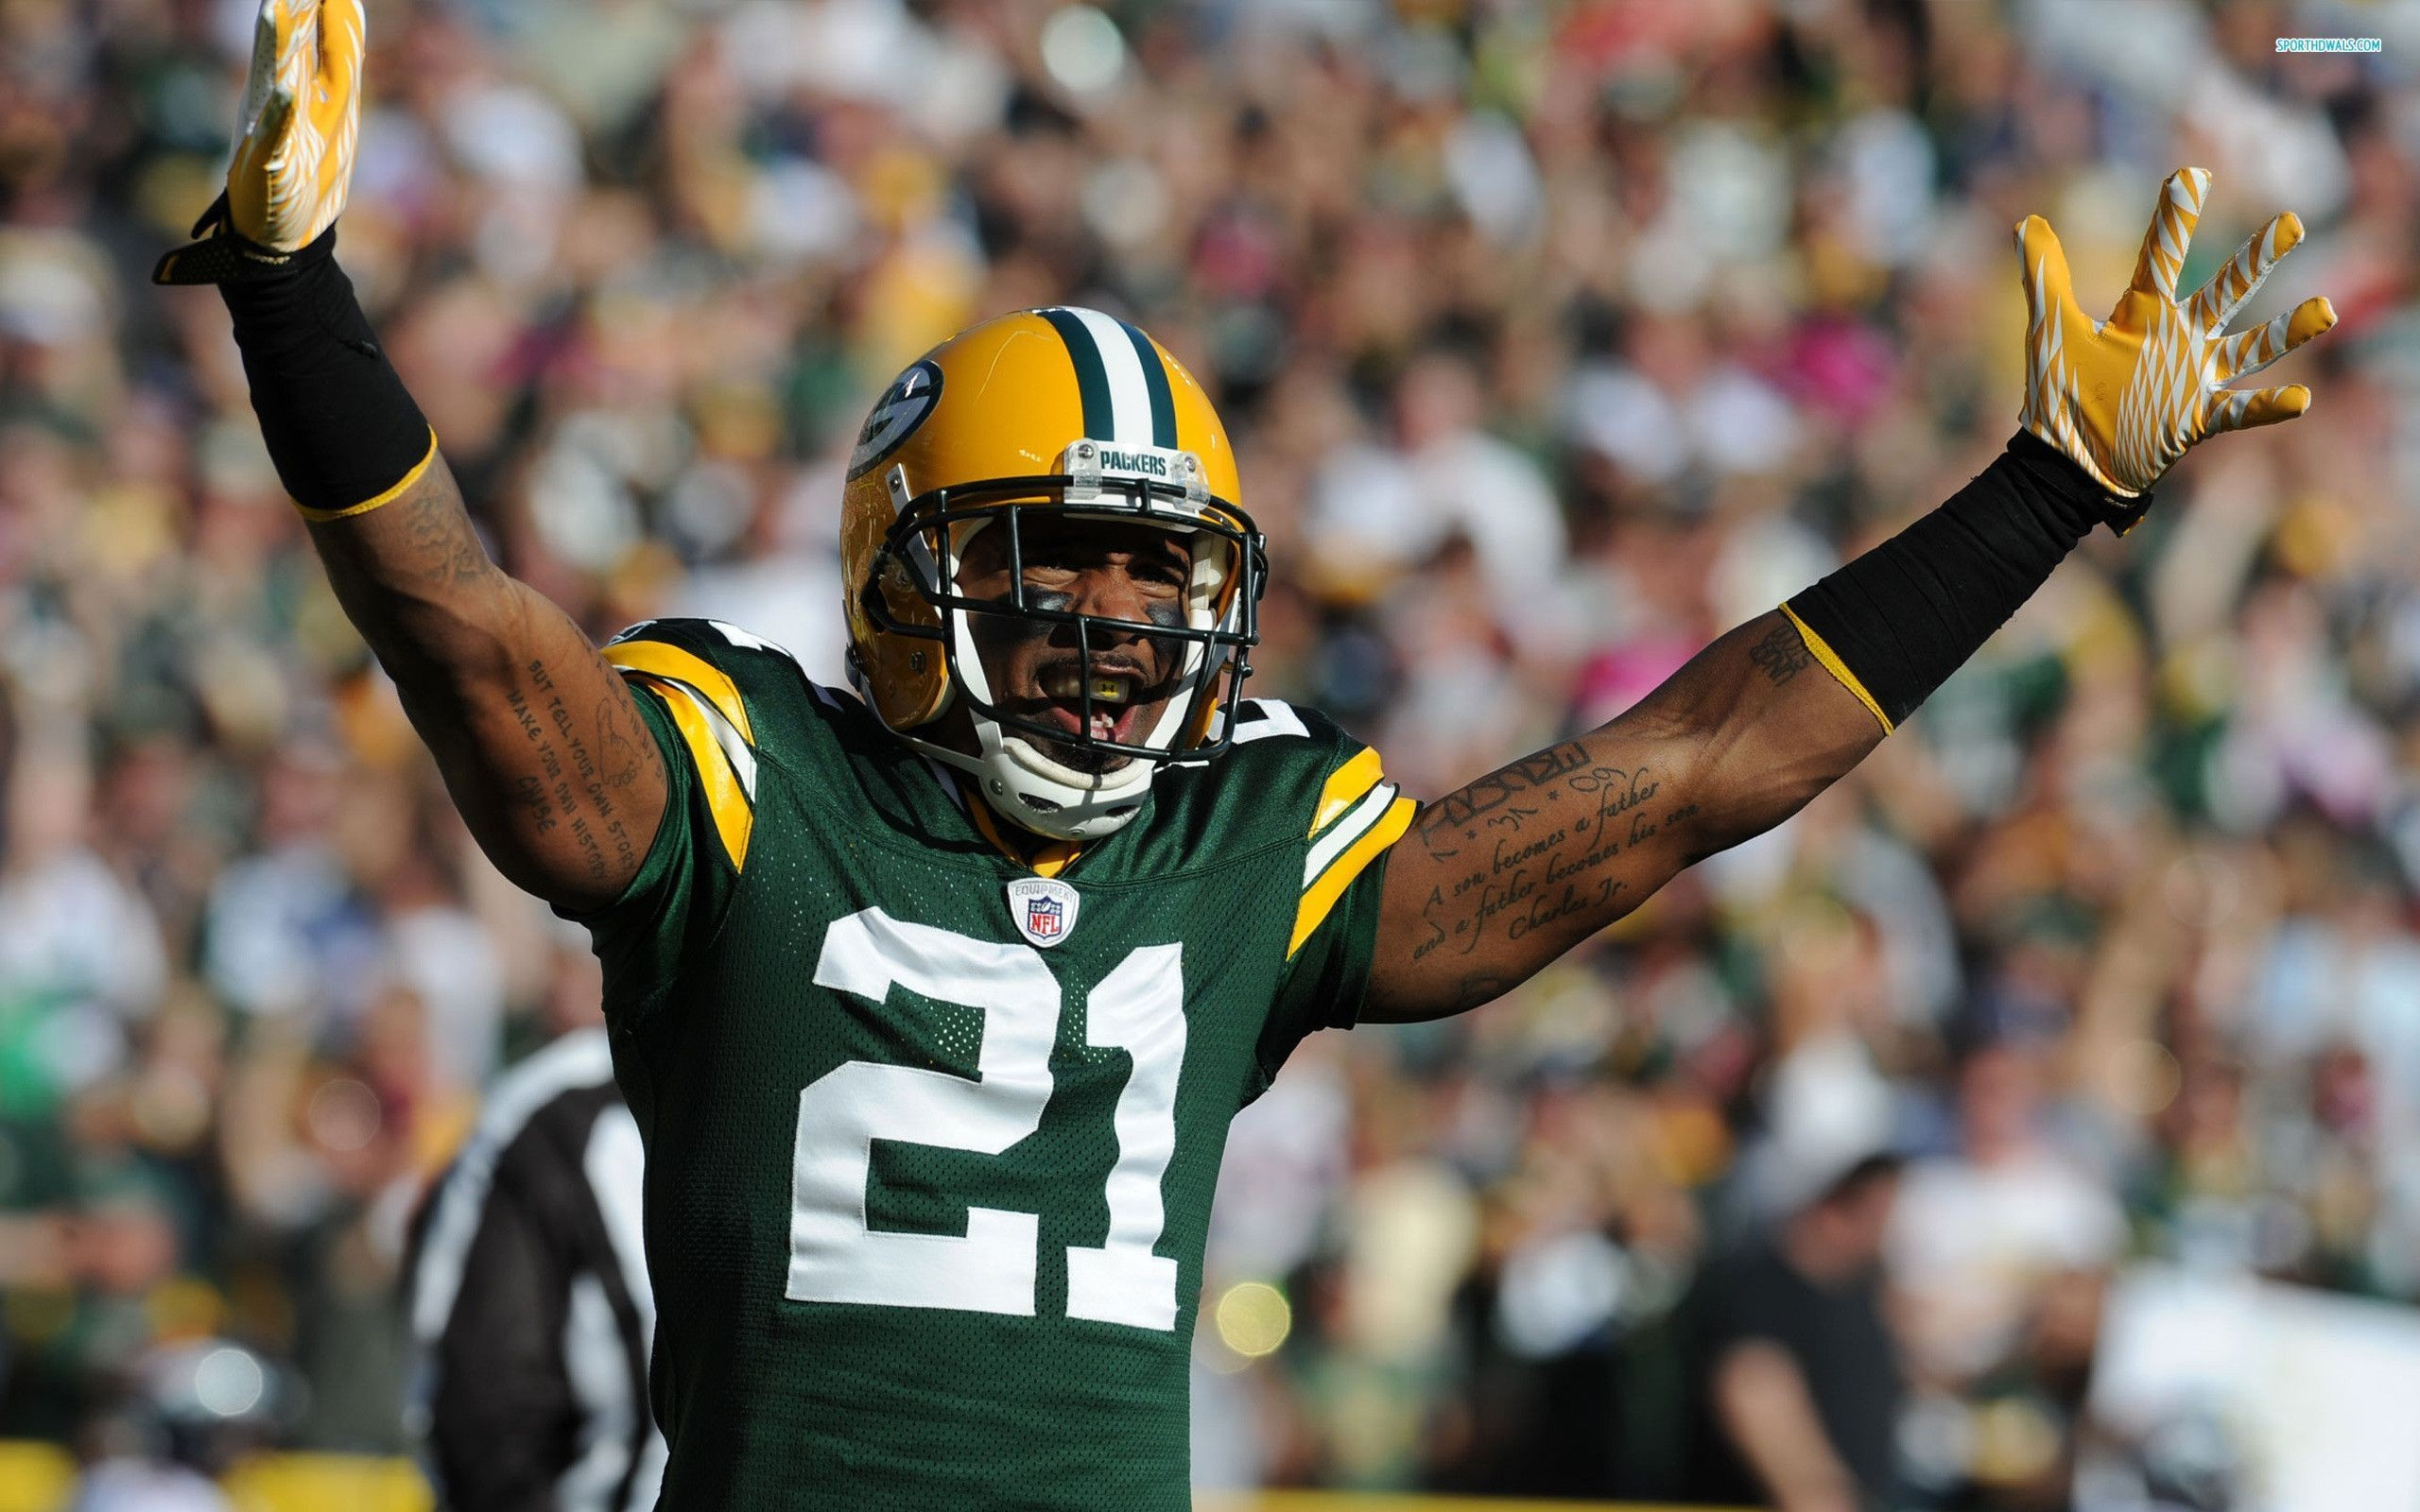 2560x1600 Best Charles Woodson Twitter Wallpaper Free Wallpaper For Desktop and  Mobile in All Resolutions Free Download